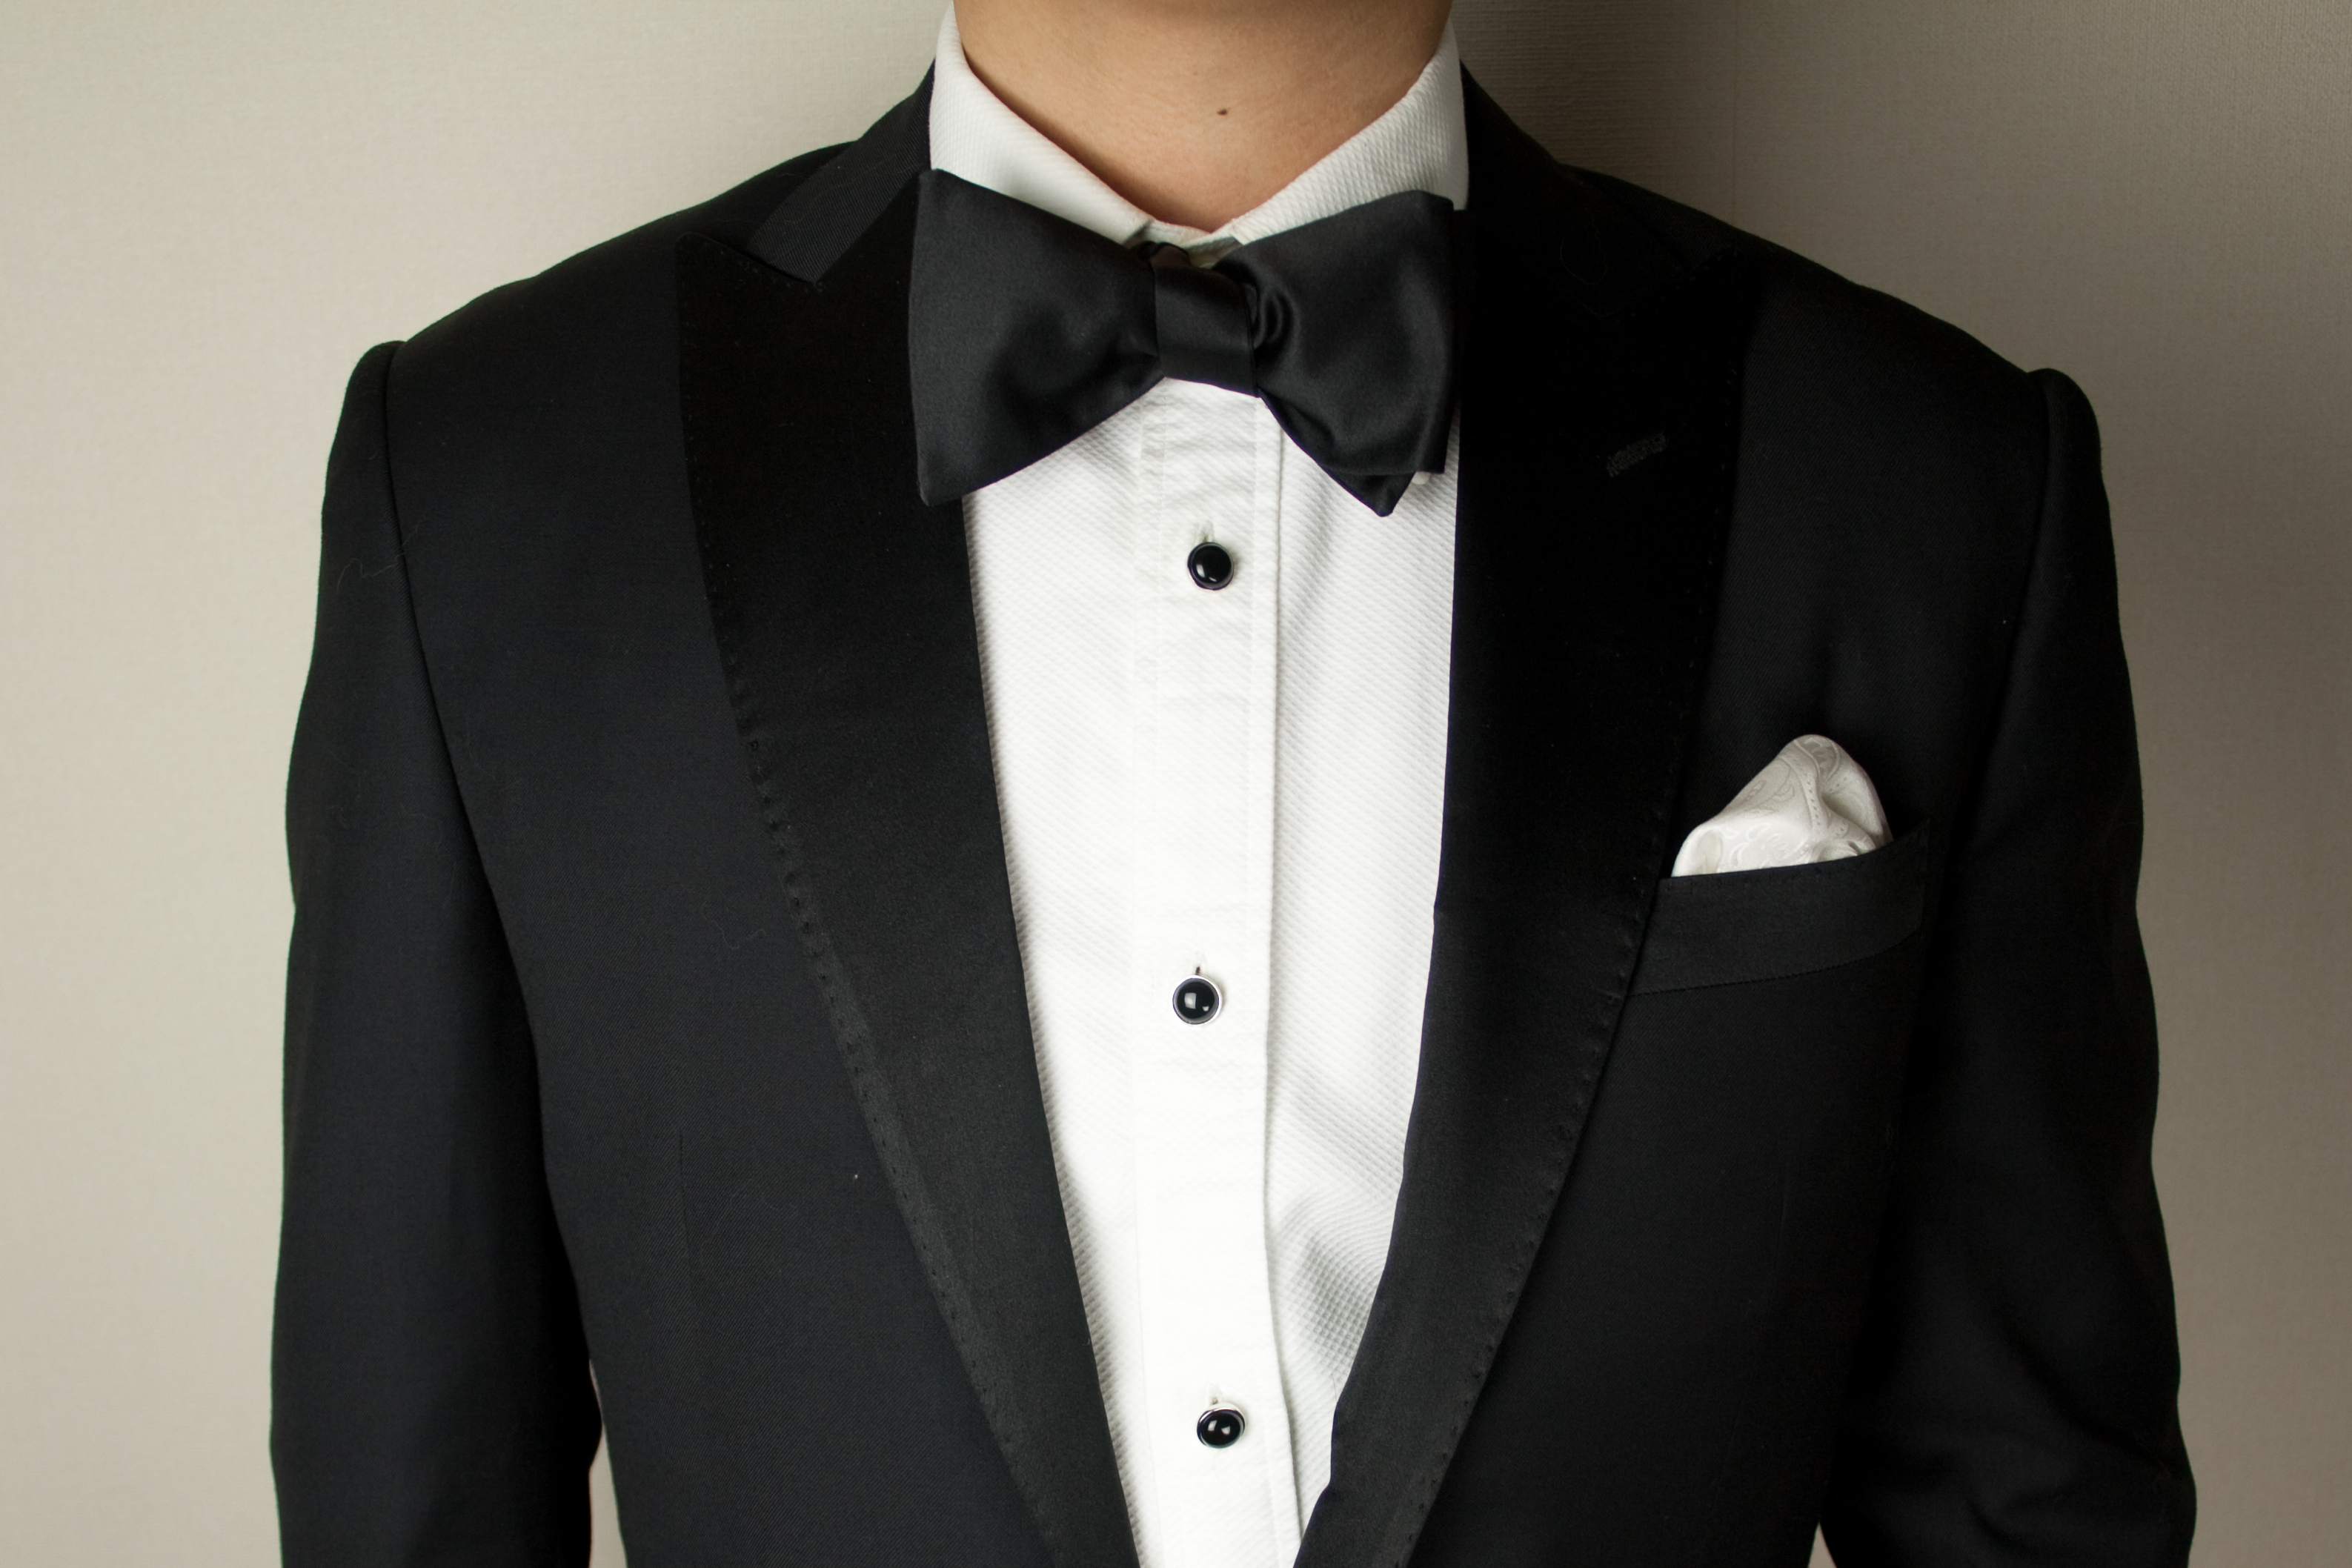 The chest of a man wearing a tuxedo.